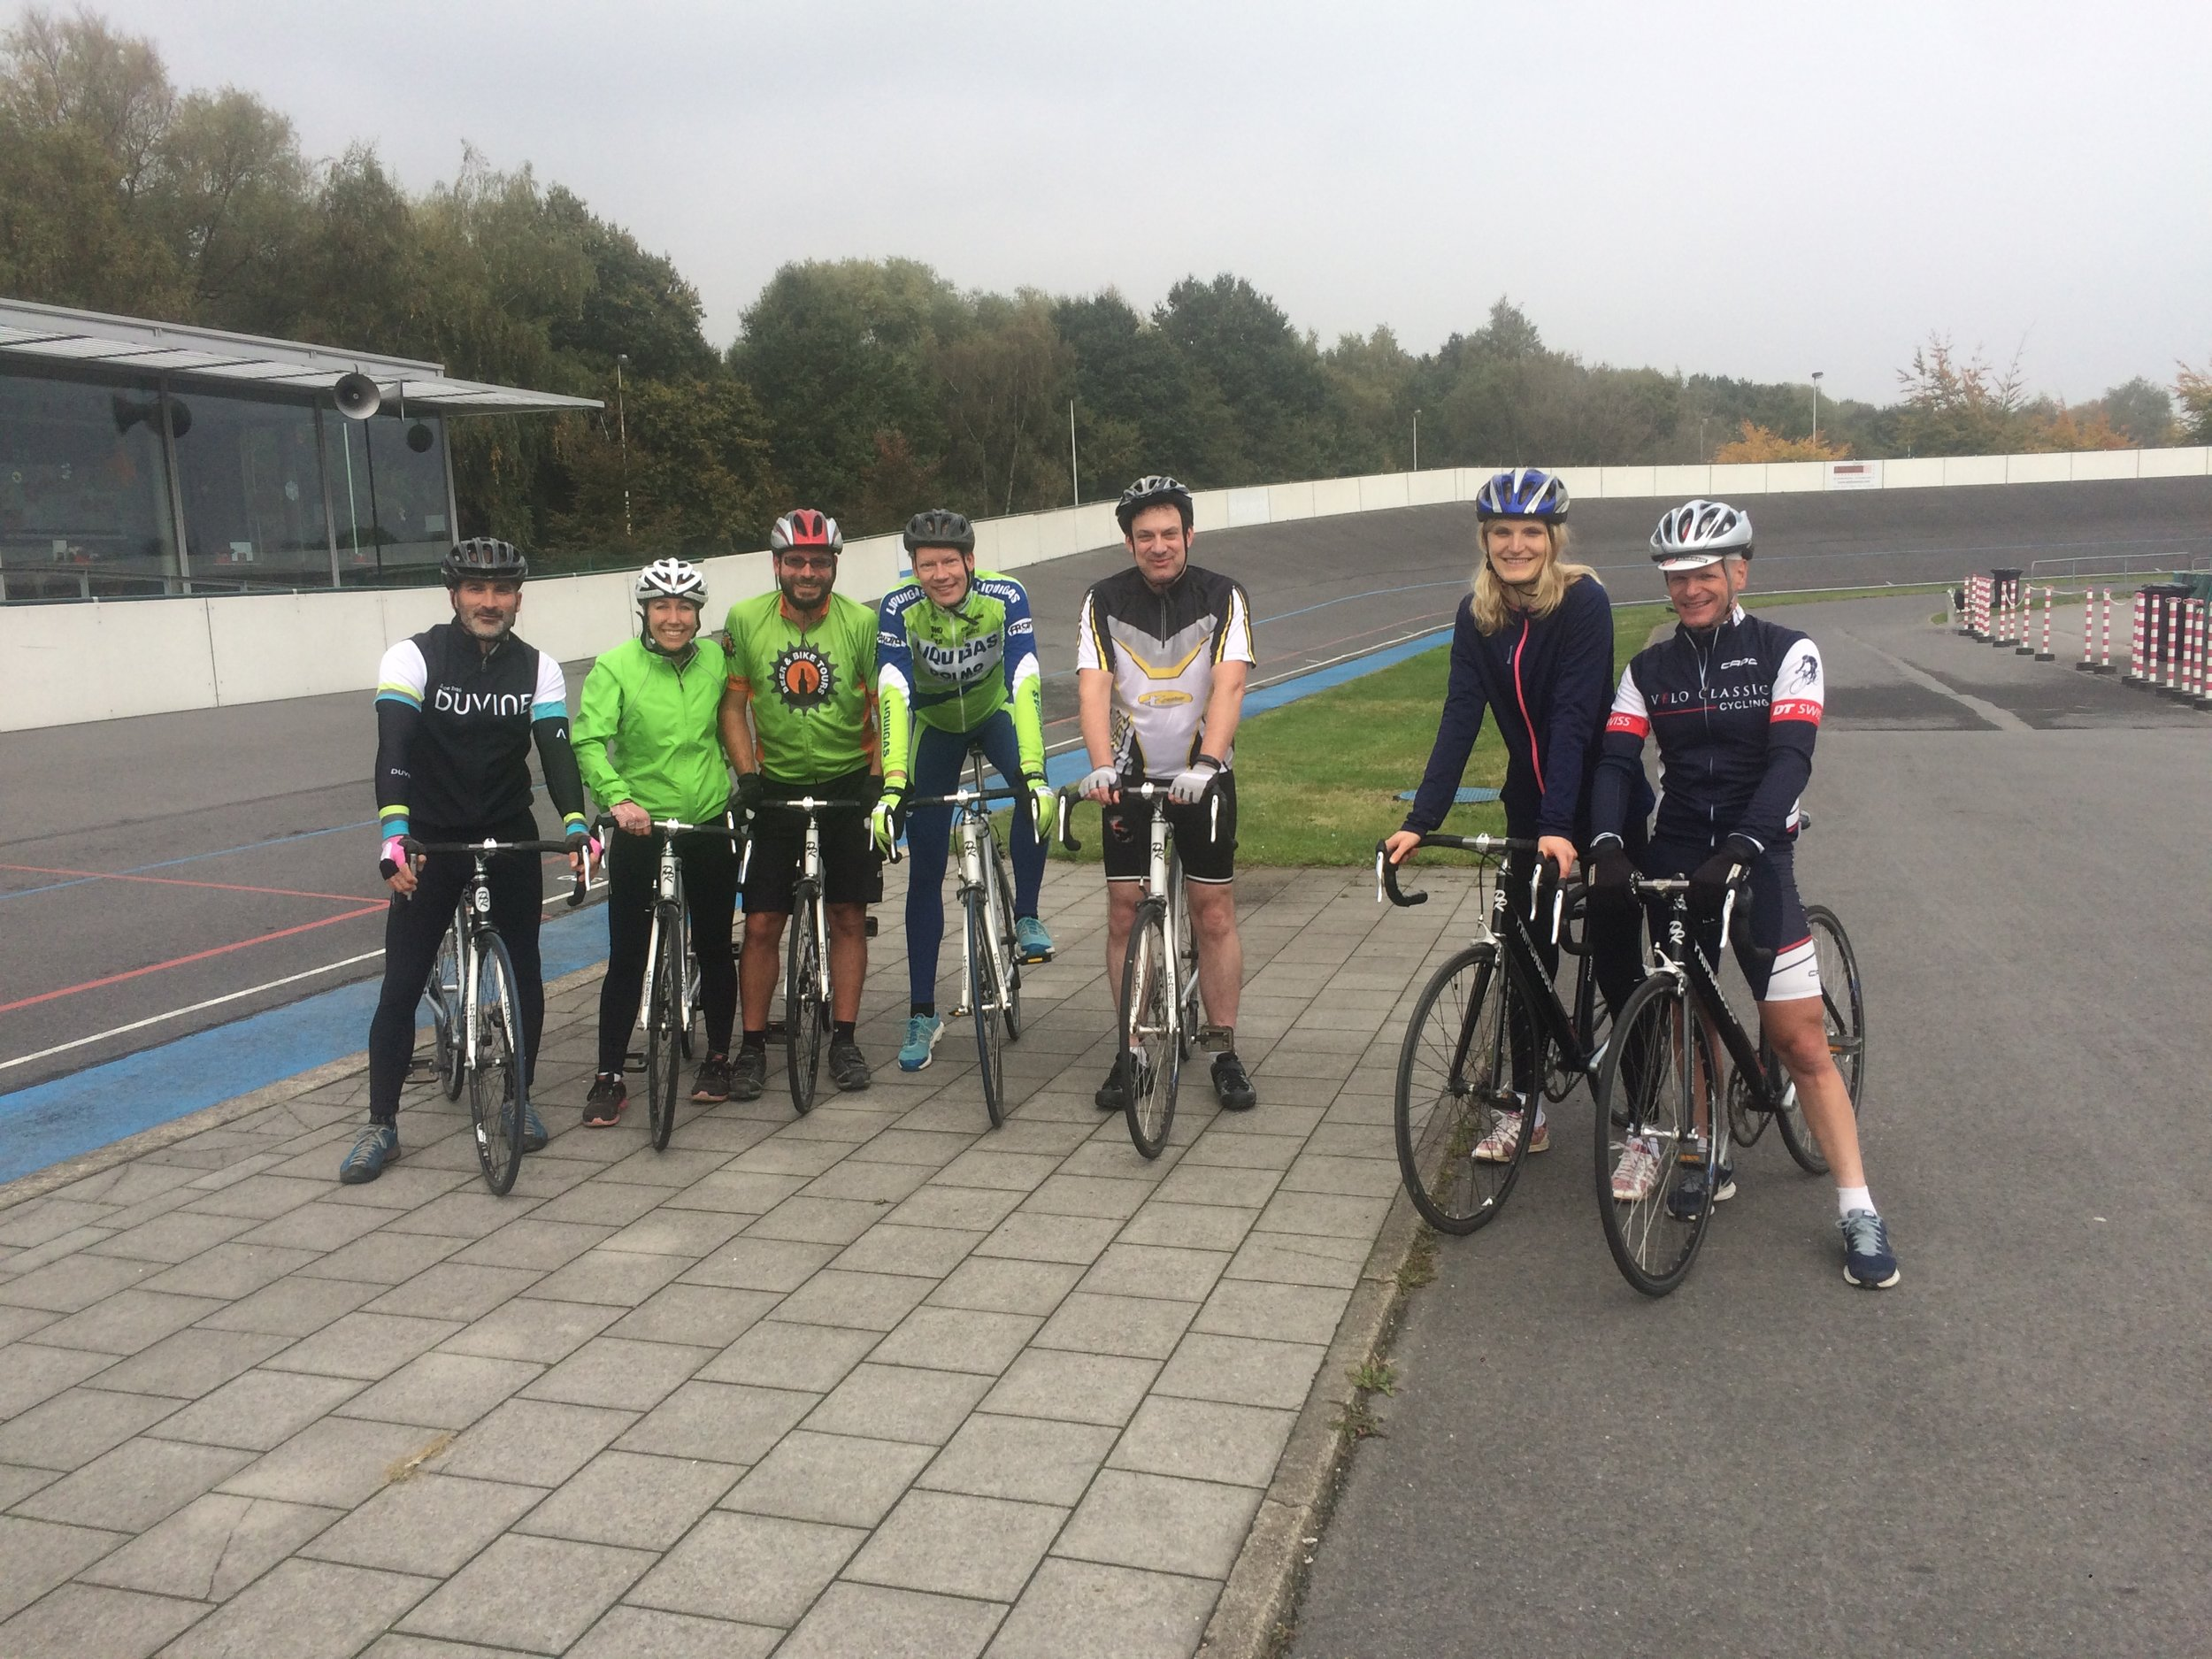 Scouting crew trying our hand at Velodrome racing and BMX stunts